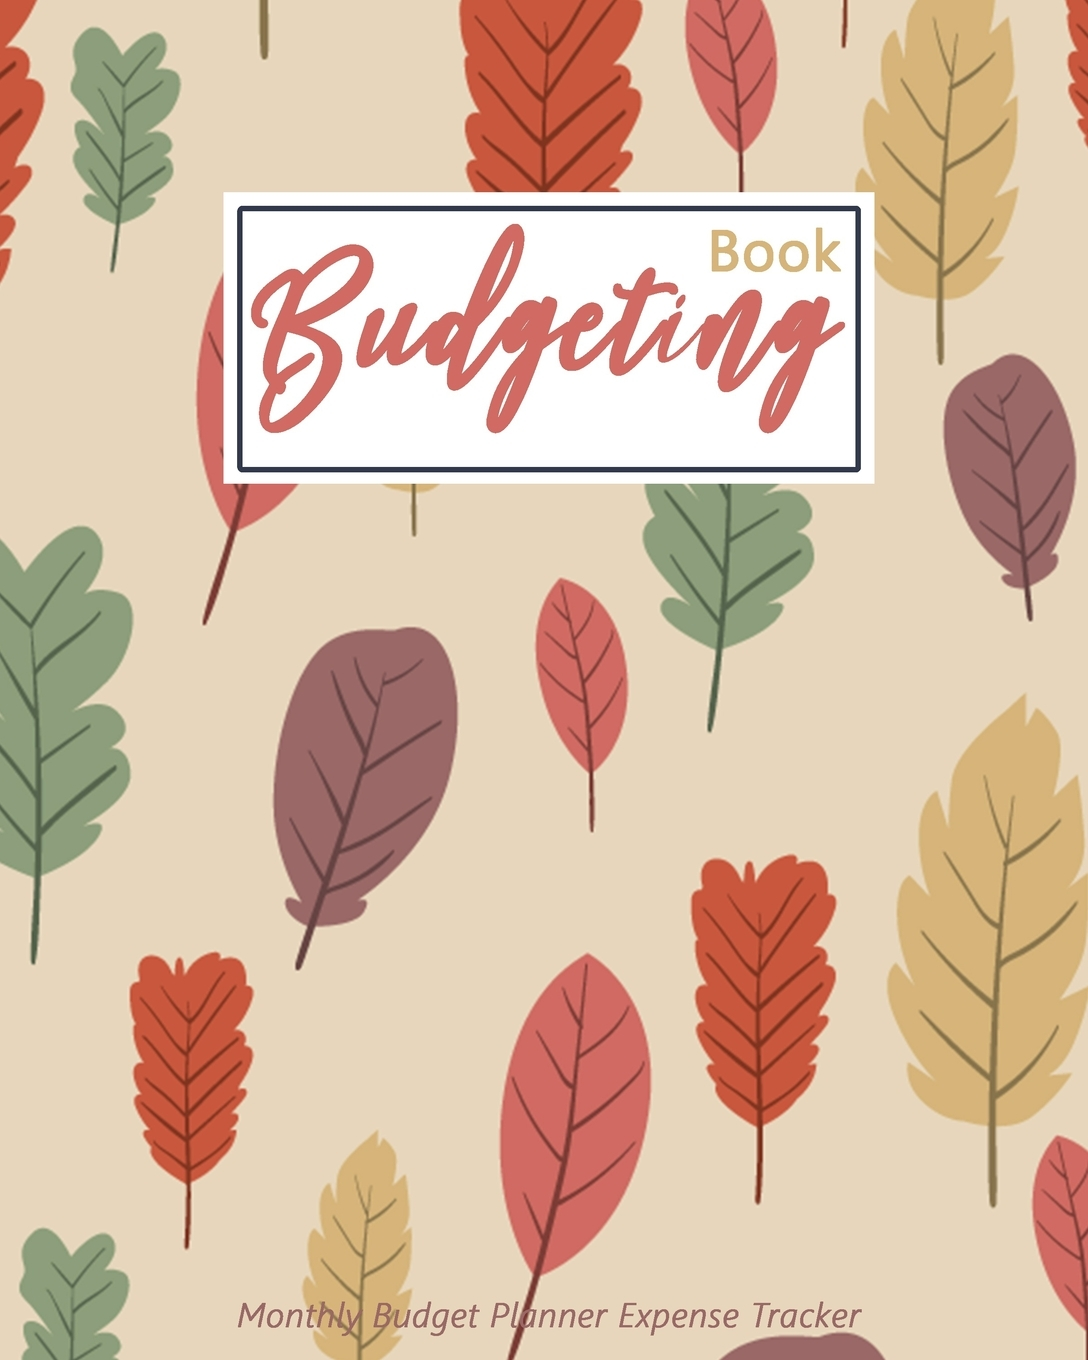 Monthly Budget Planner Expense Tracker Weekly Budget